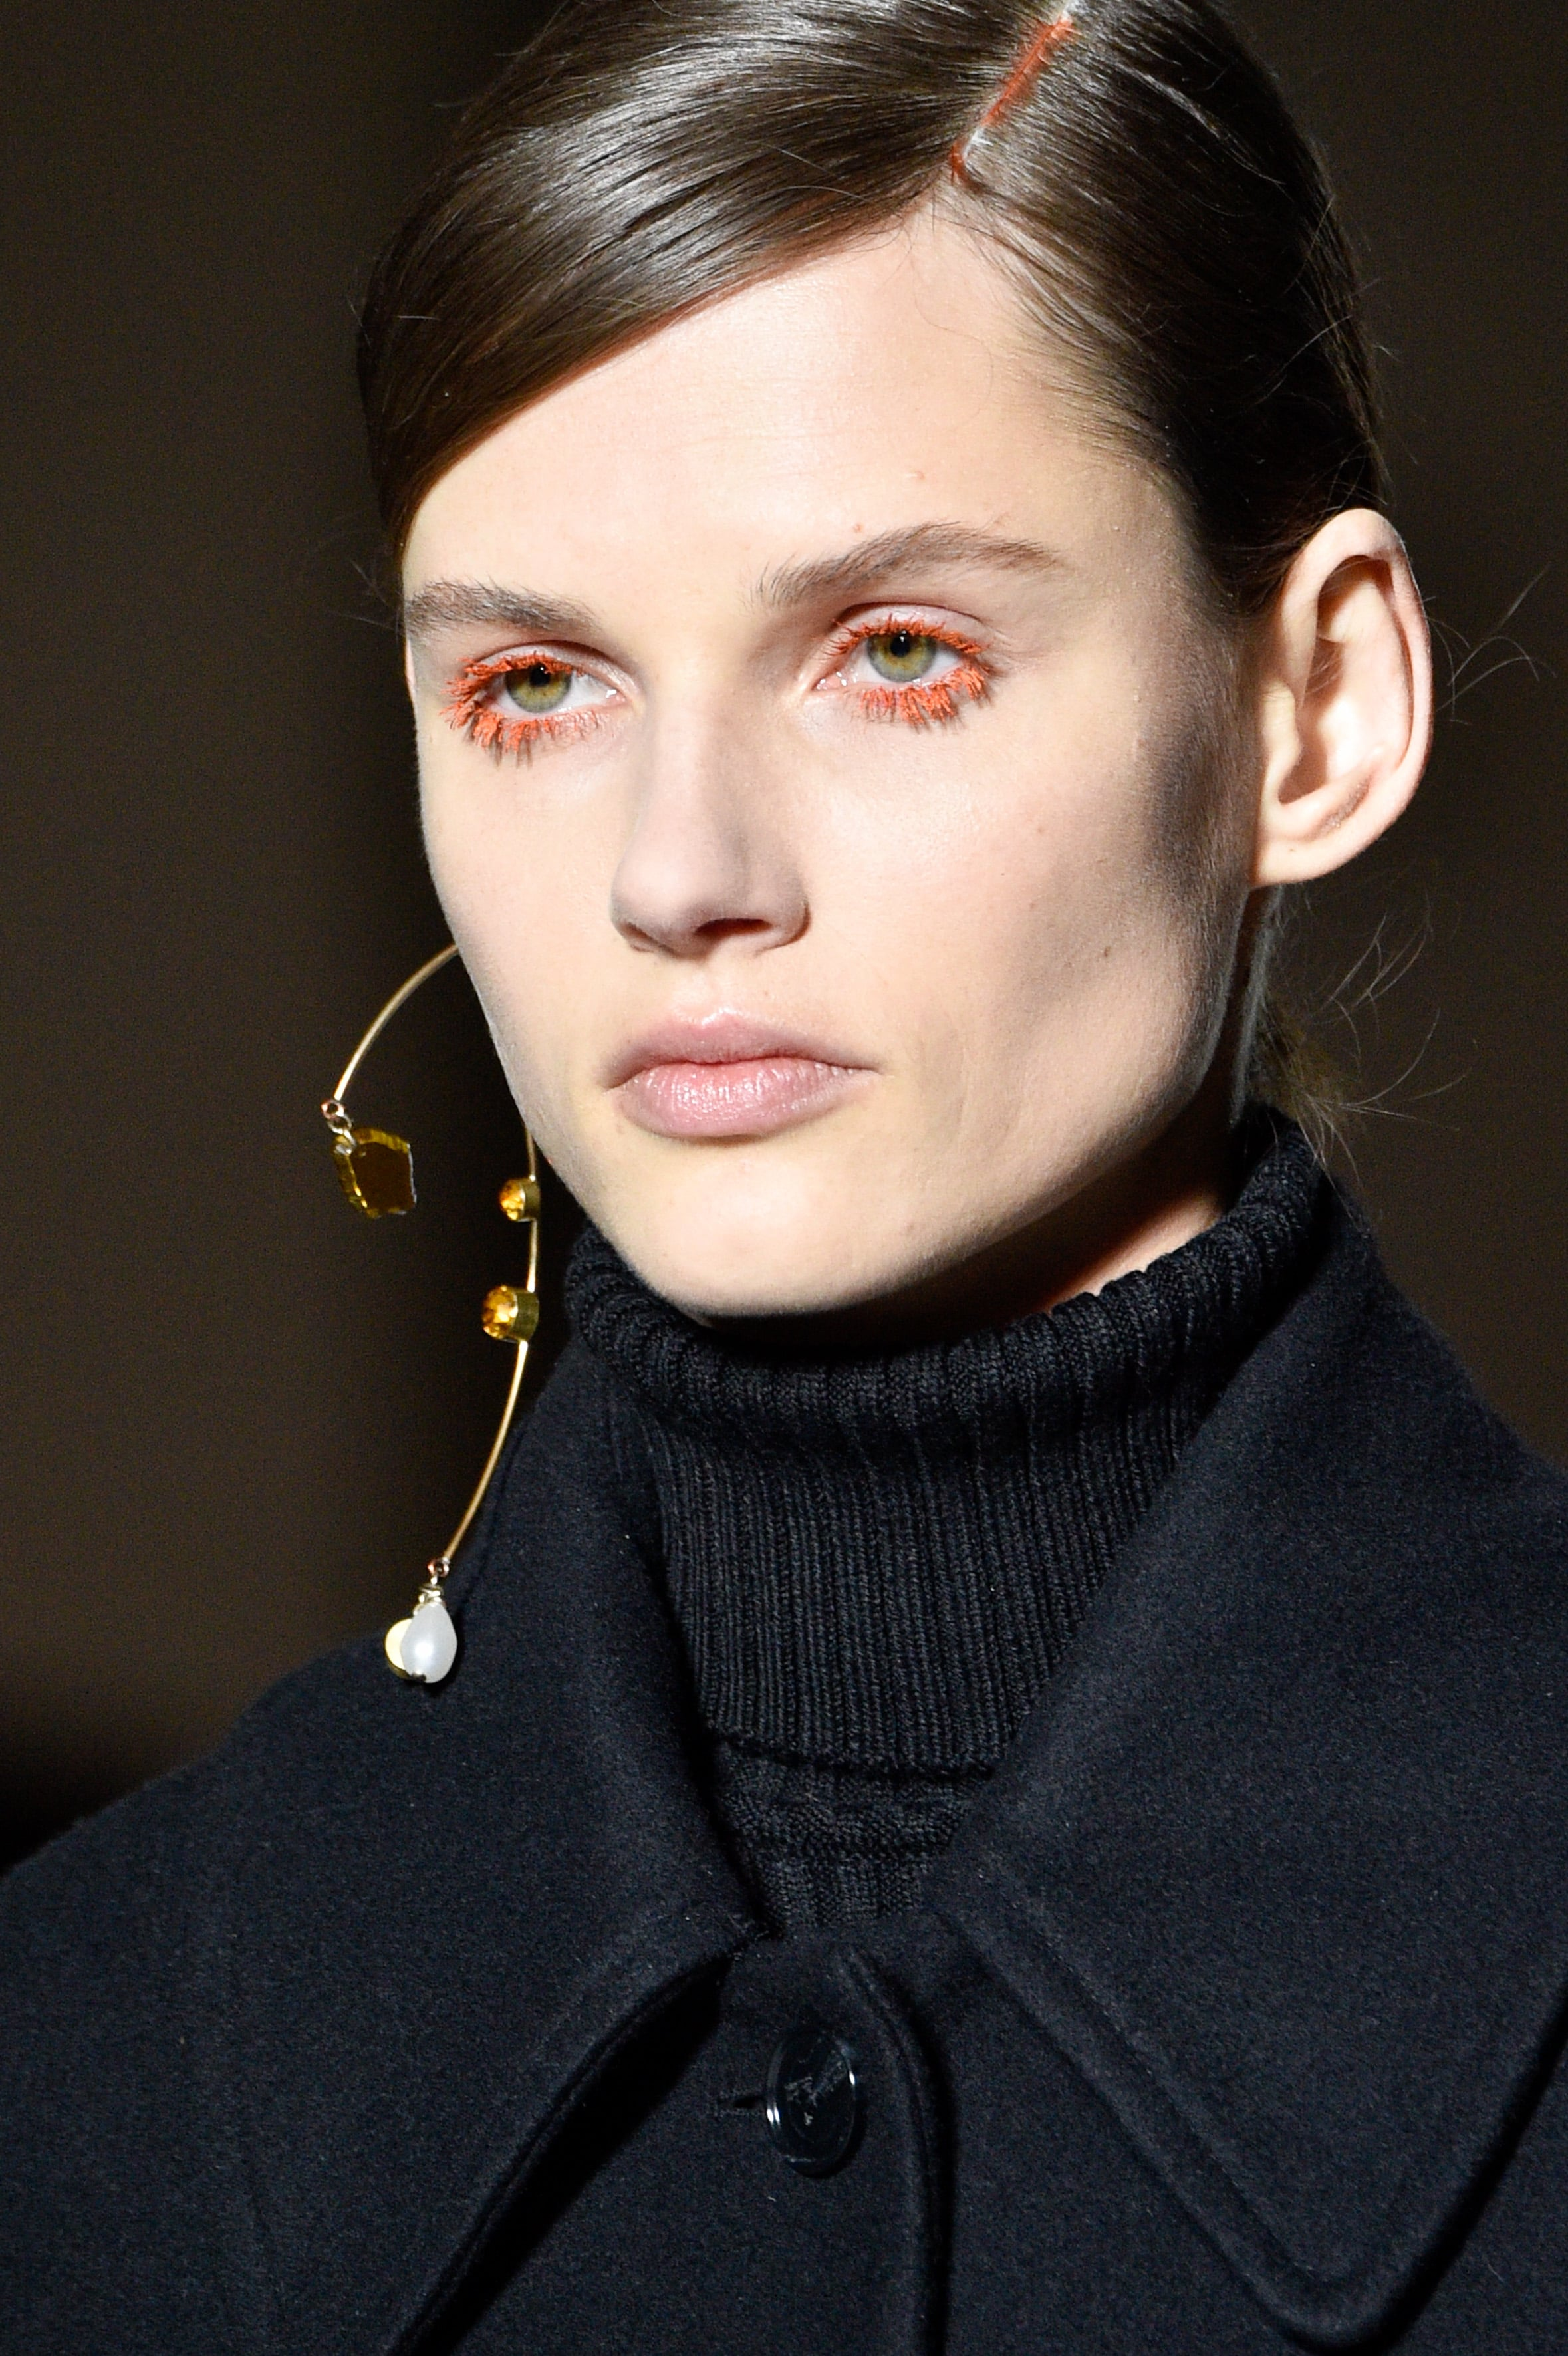 Dries Van Noten's architectural single earring. Image: Courtesy Peter White/Getty Images